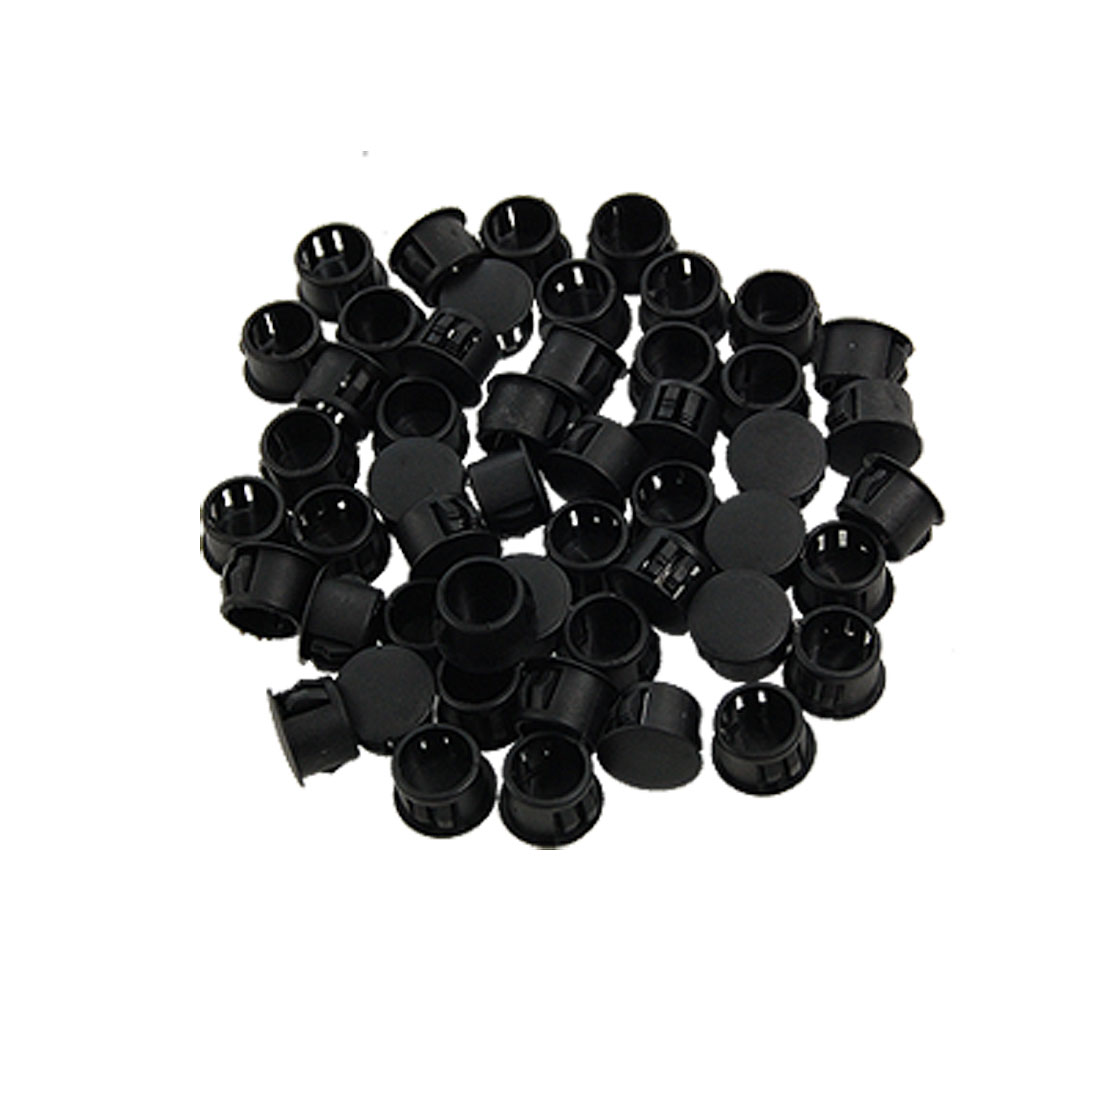 "50 Pcs 9/16"" Head Plastic Locking 1/2"" Dia Hole Plugs Black"